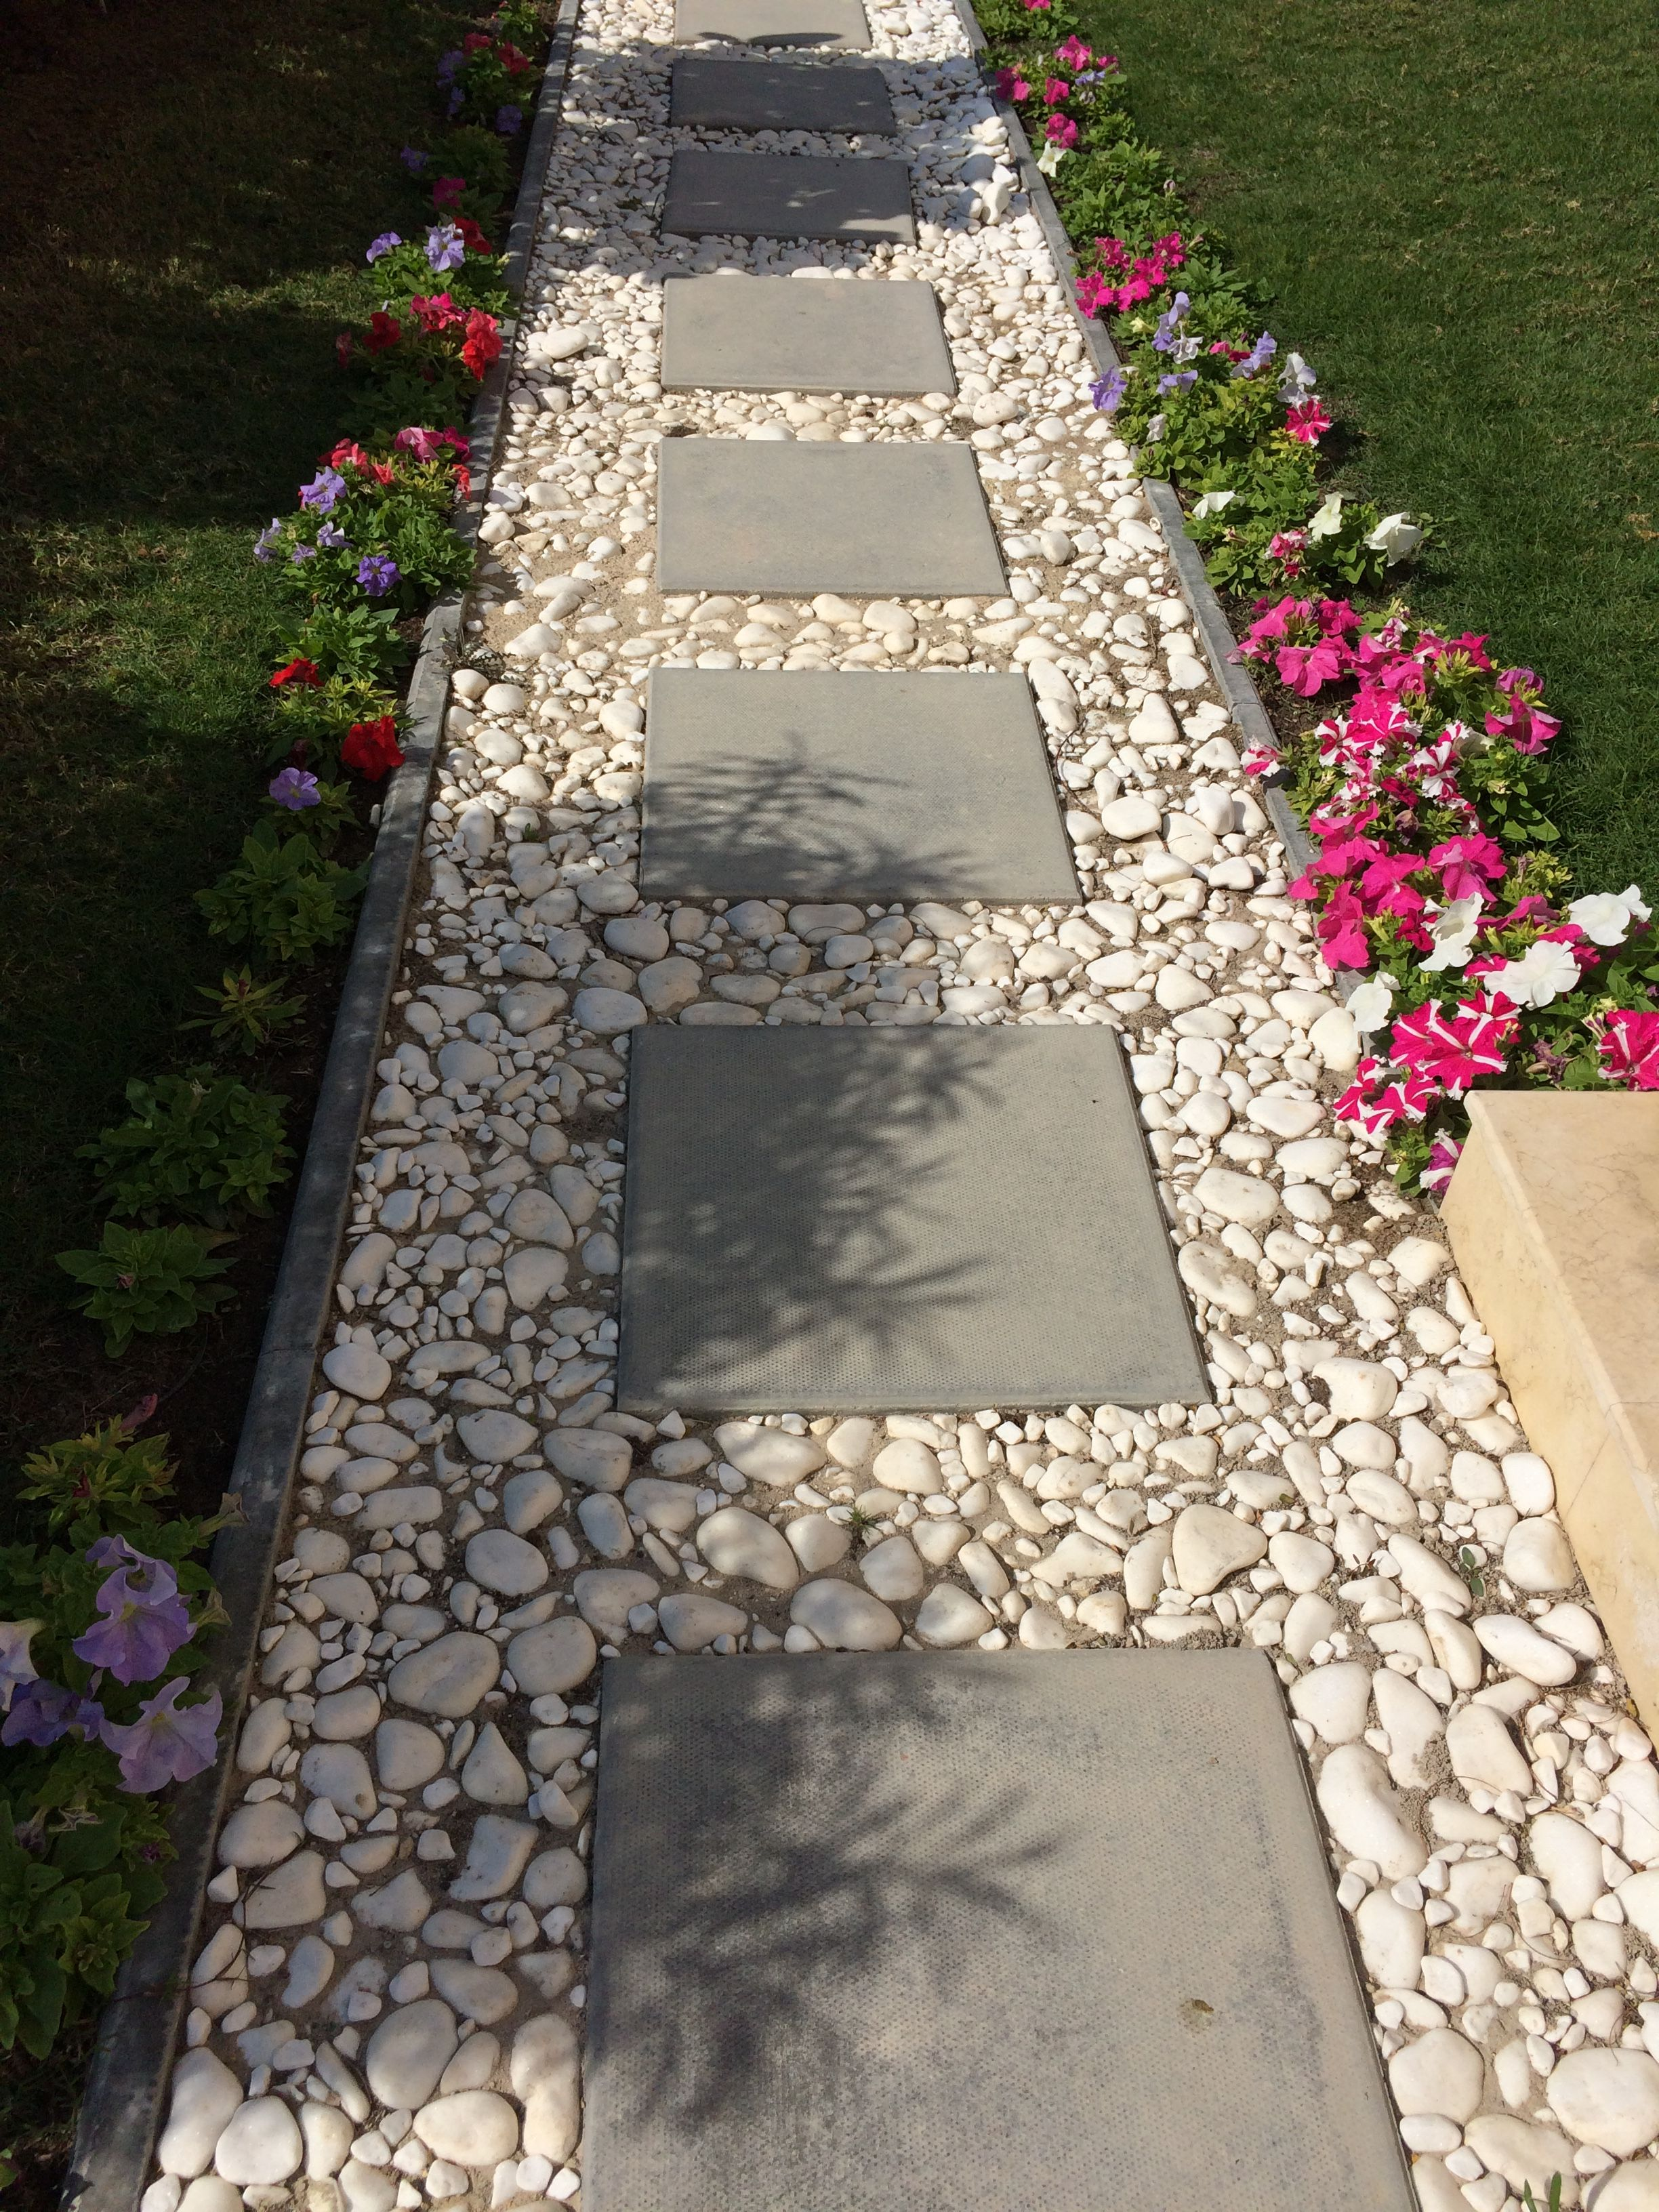 Beau Cement Block Tiles Bordered By White Pebbles For A Simple Pathway   Path To  Backyard On Driveway Side